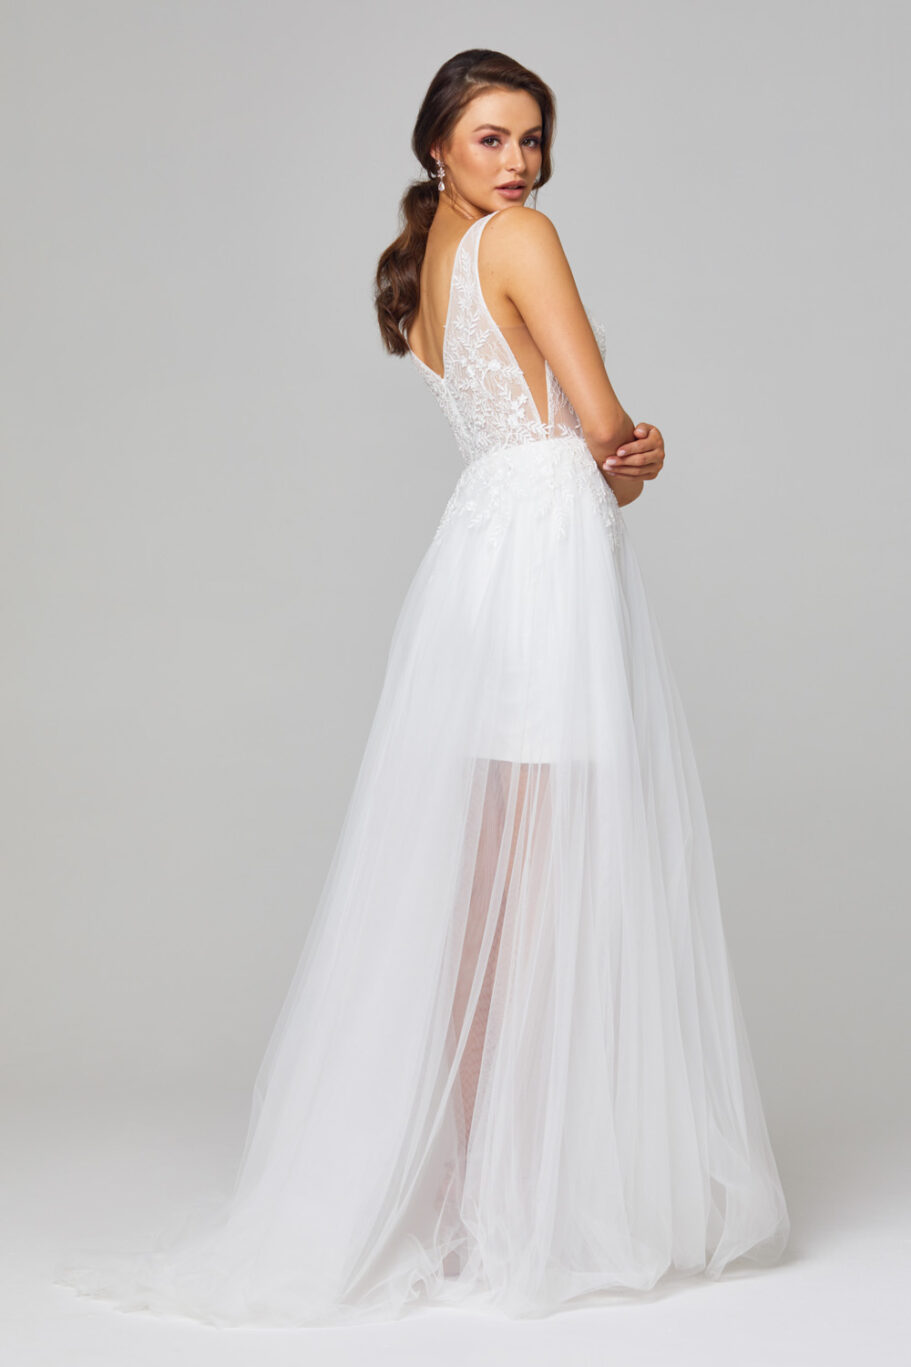 Arabella Plunging V-neck Wedding Dress - TC319 back